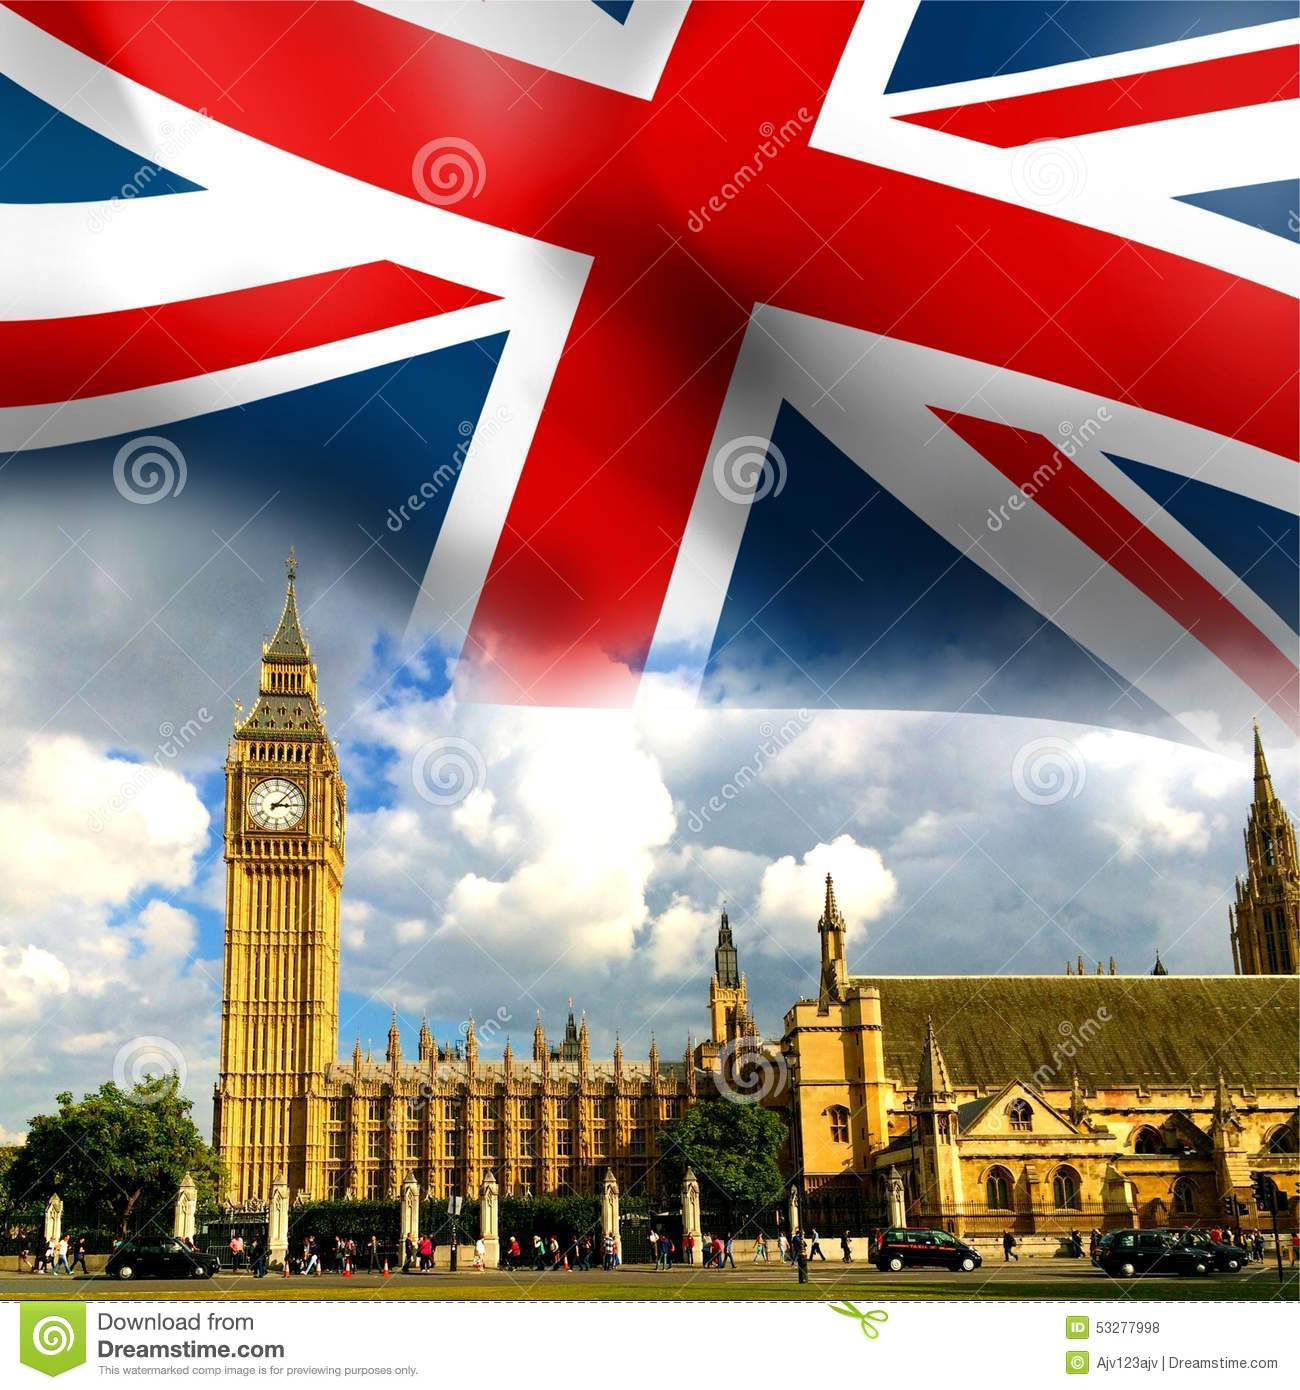 The Houses Of Parliament With Union Jack Flag In Background And Big Ben Clock